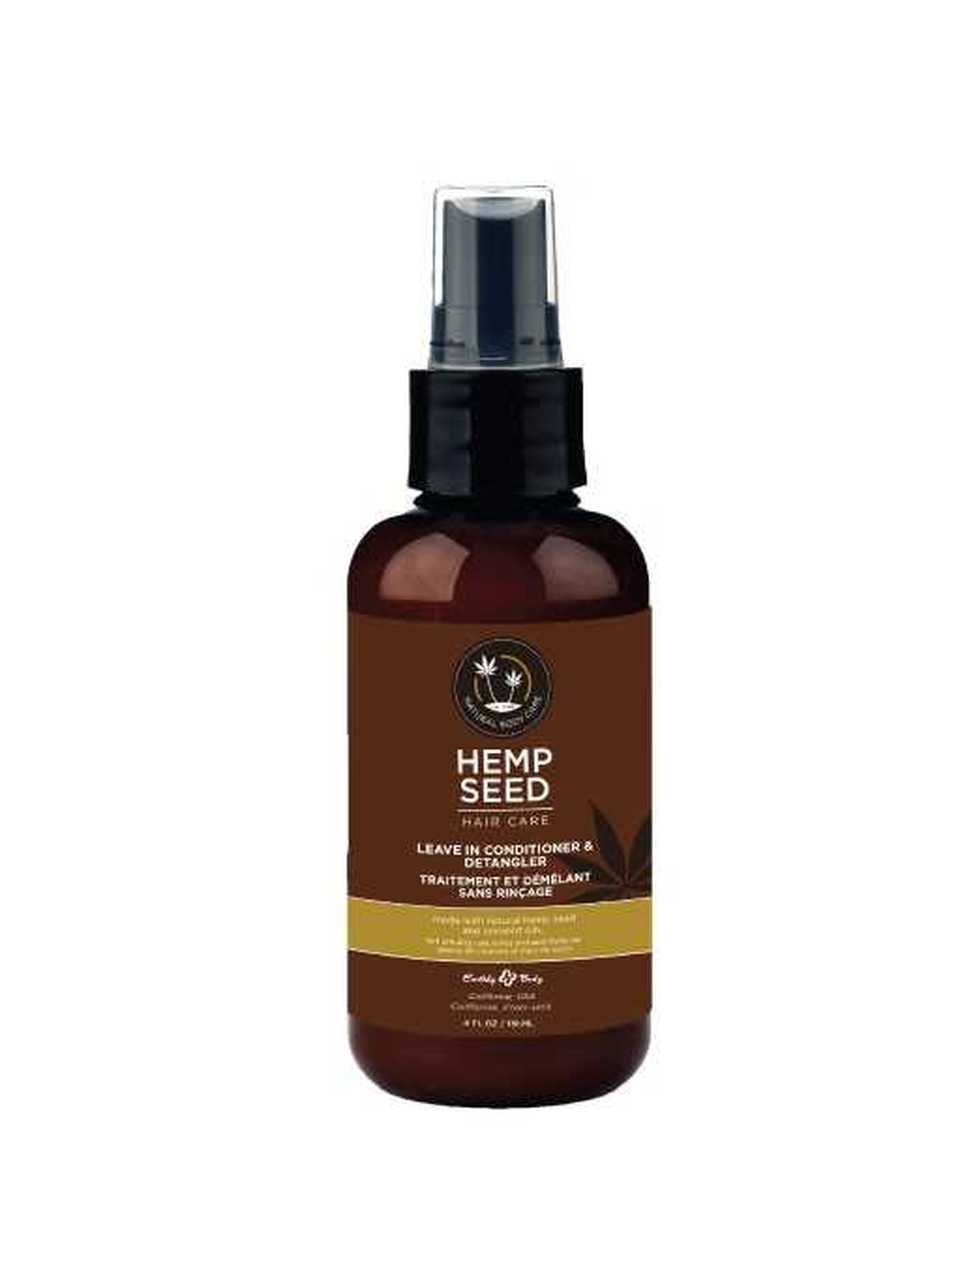 Earthly Body Hemp Seed Hair Care - Leave-In Conditioner